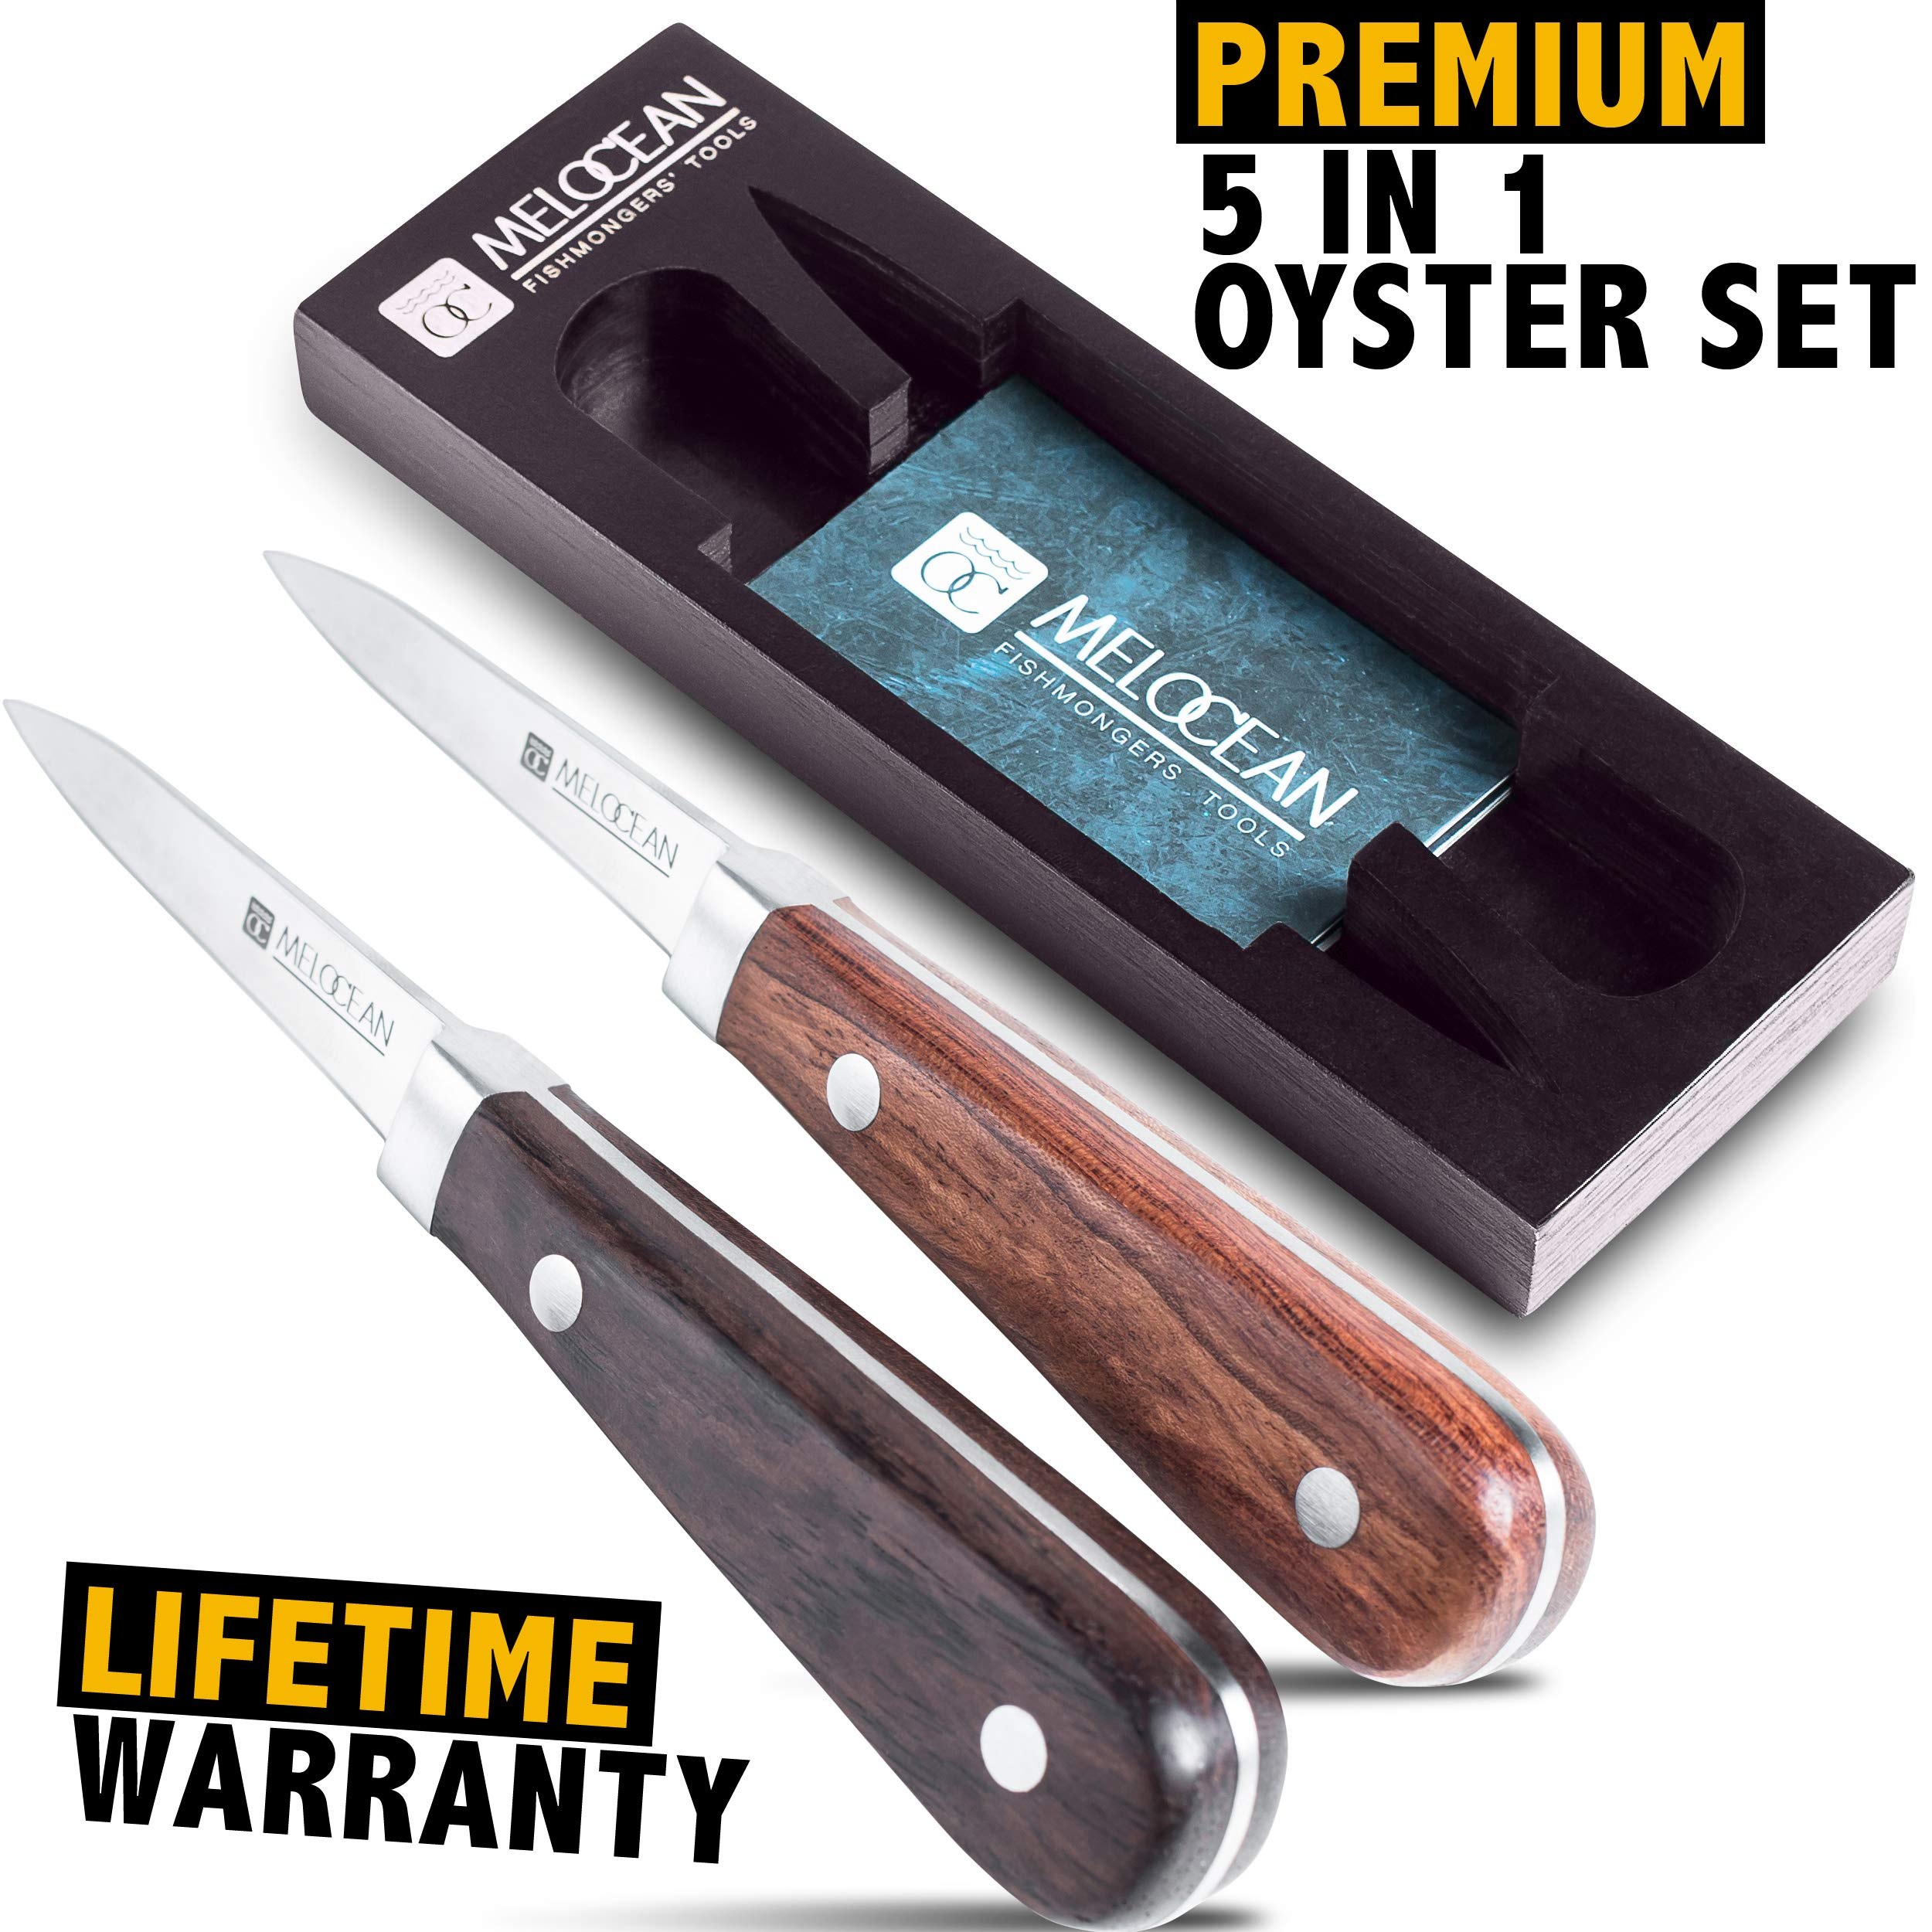 Oyster Shucking Knife Set of 2 – Professional Oyster Clam Knife Shucker Kit in Gift Box – Free Ebook and Brochure Included